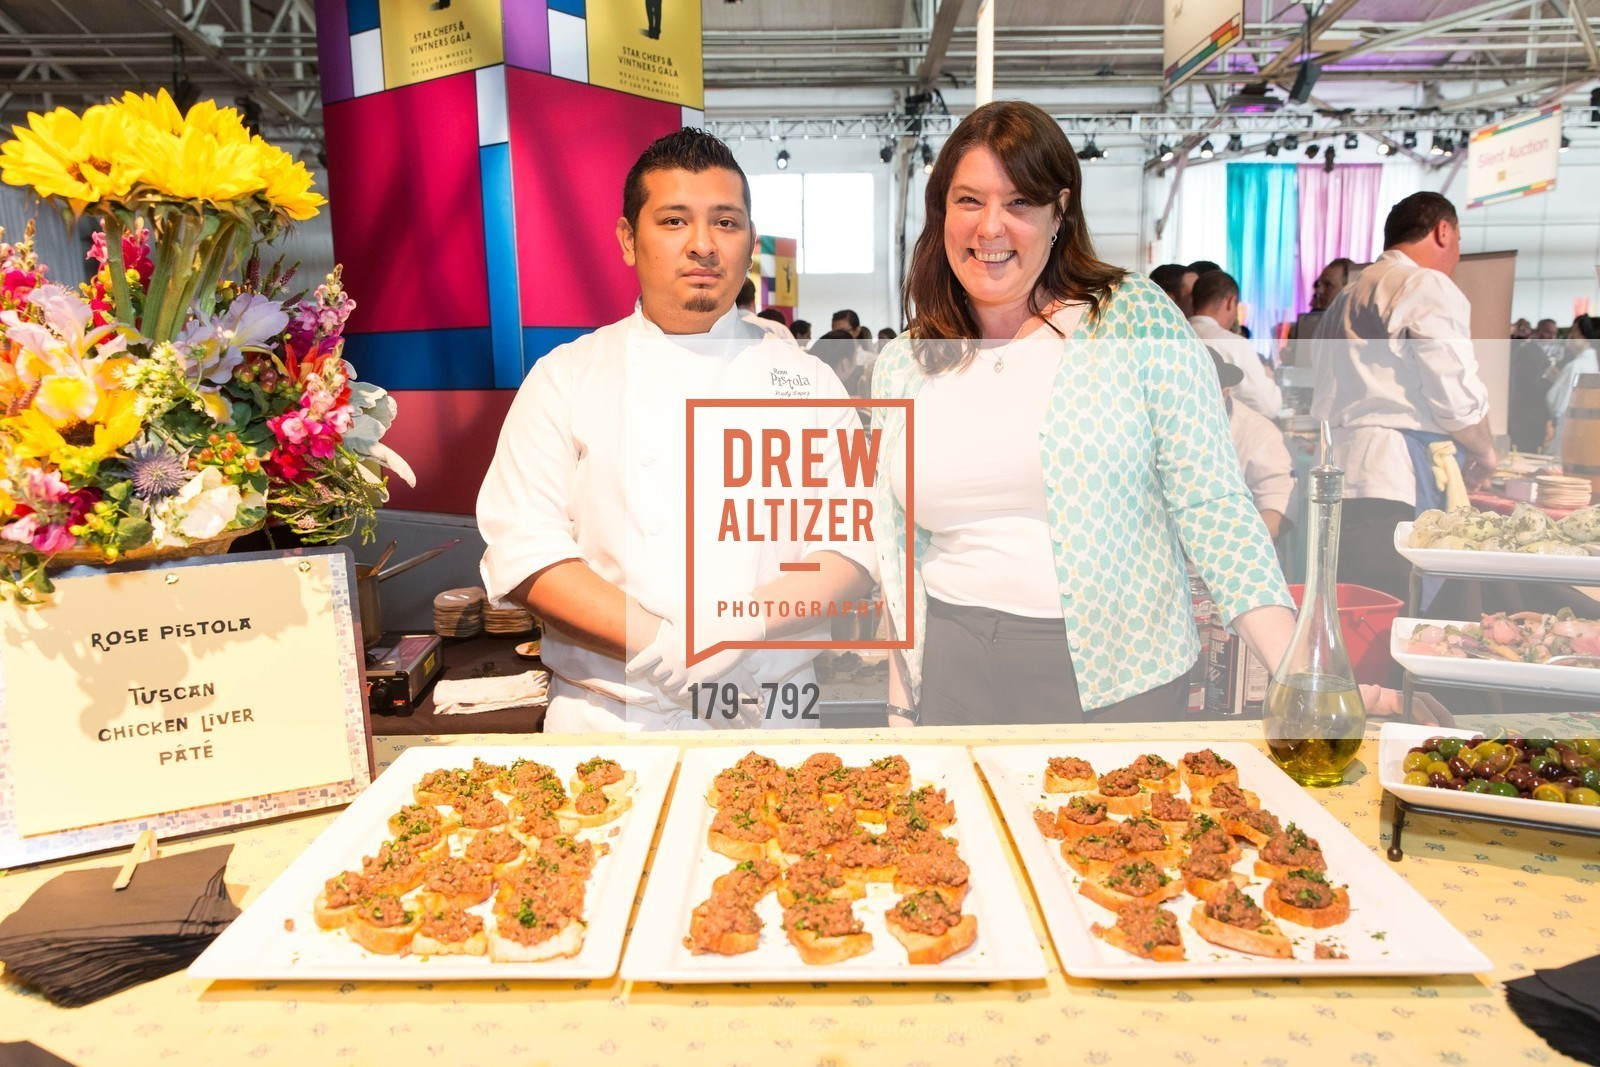 Rudy Lopez, MEALS ON WHEELS OF SAN FRANCISCO'S 28th Annual Star Chefs and Vintners Gala, US, April 19th, 2015,Drew Altizer, Drew Altizer Photography, full-service agency, private events, San Francisco photographer, photographer california